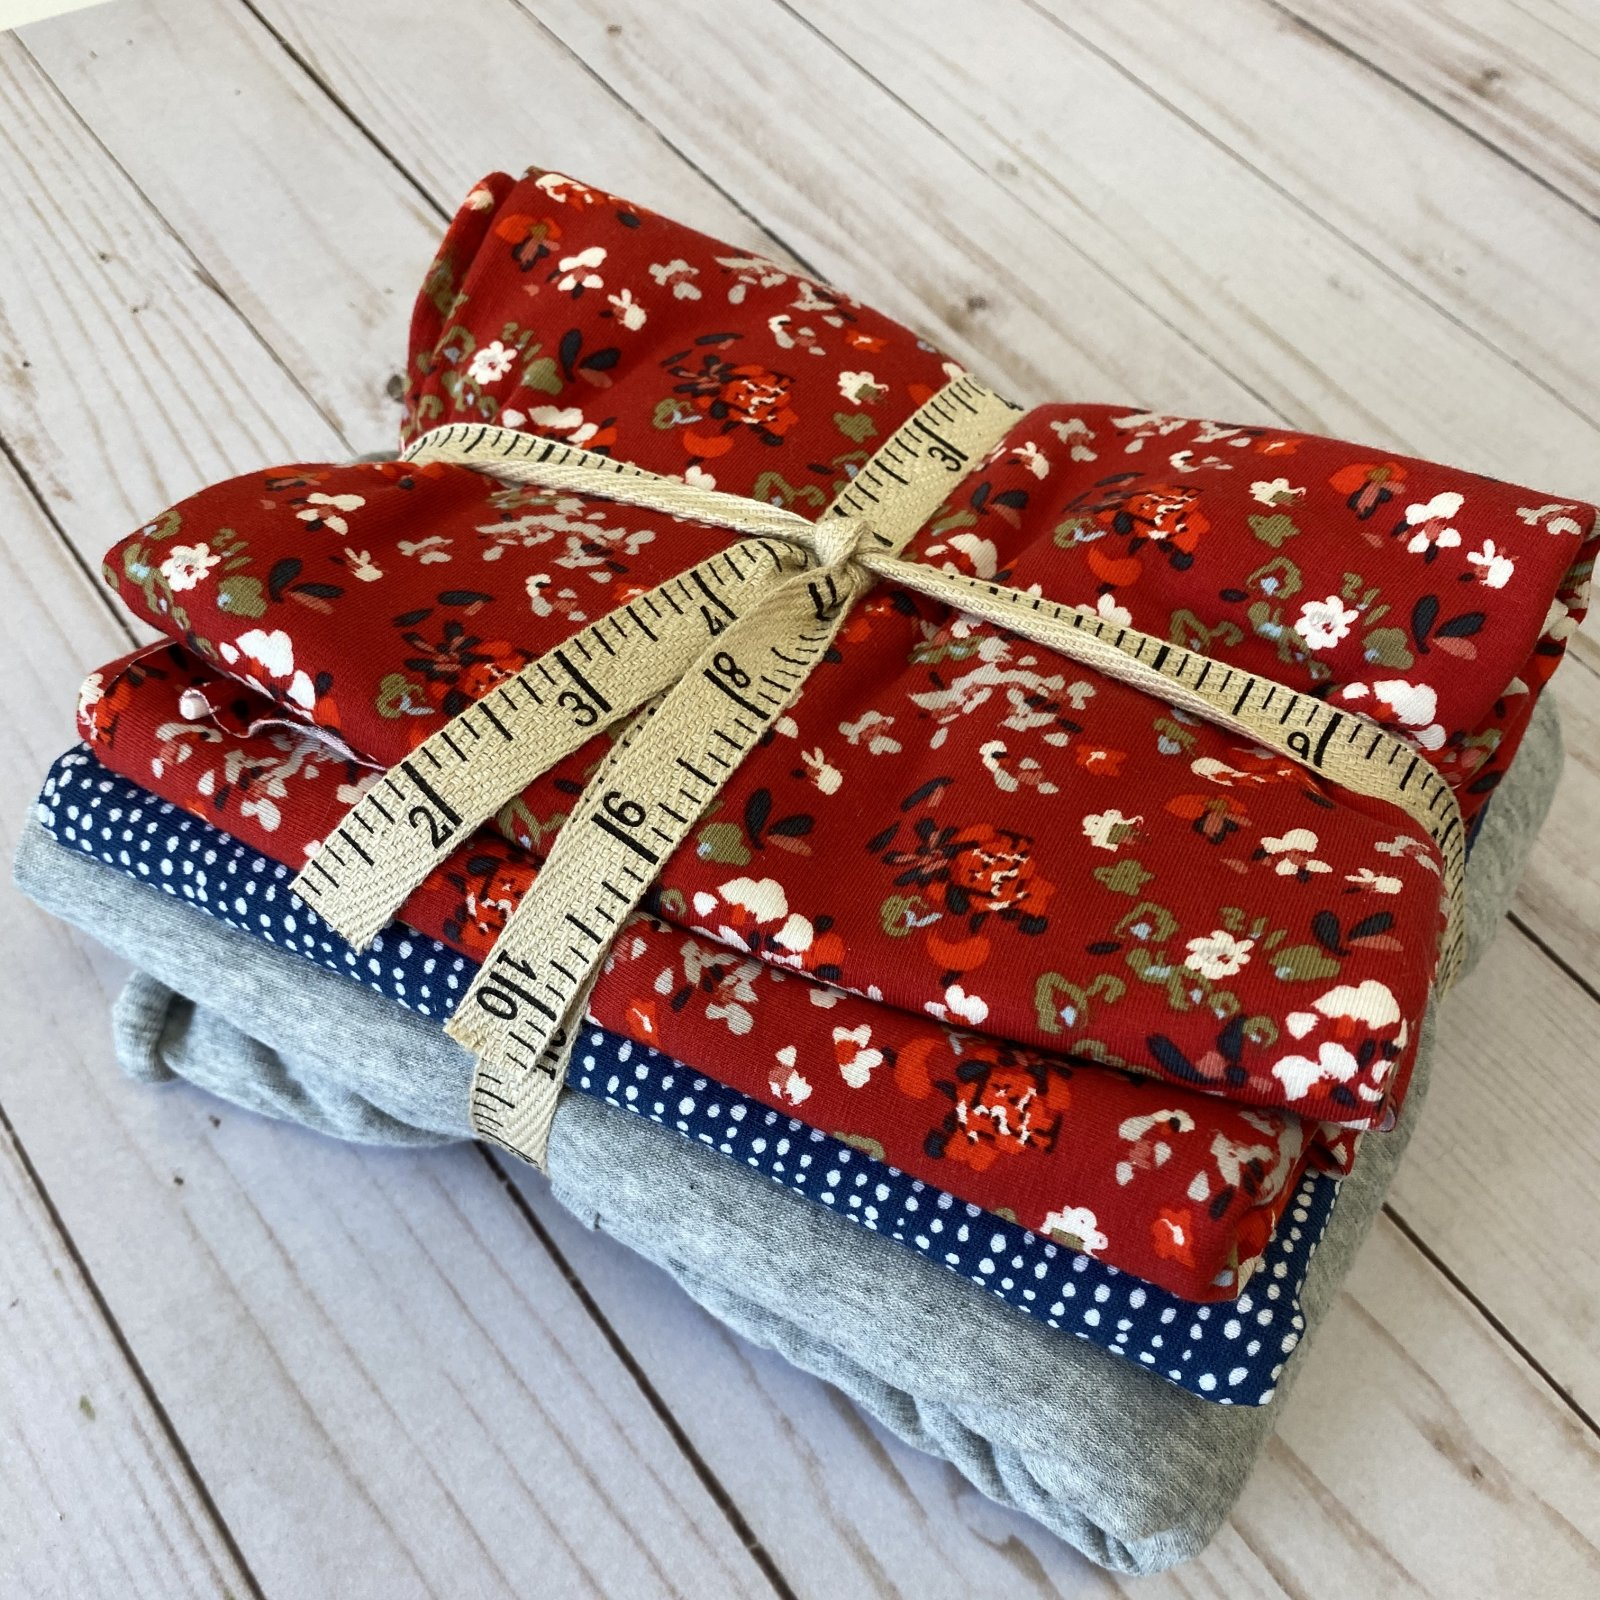 Knit Remnant Bundle - Red, Gray and Blue